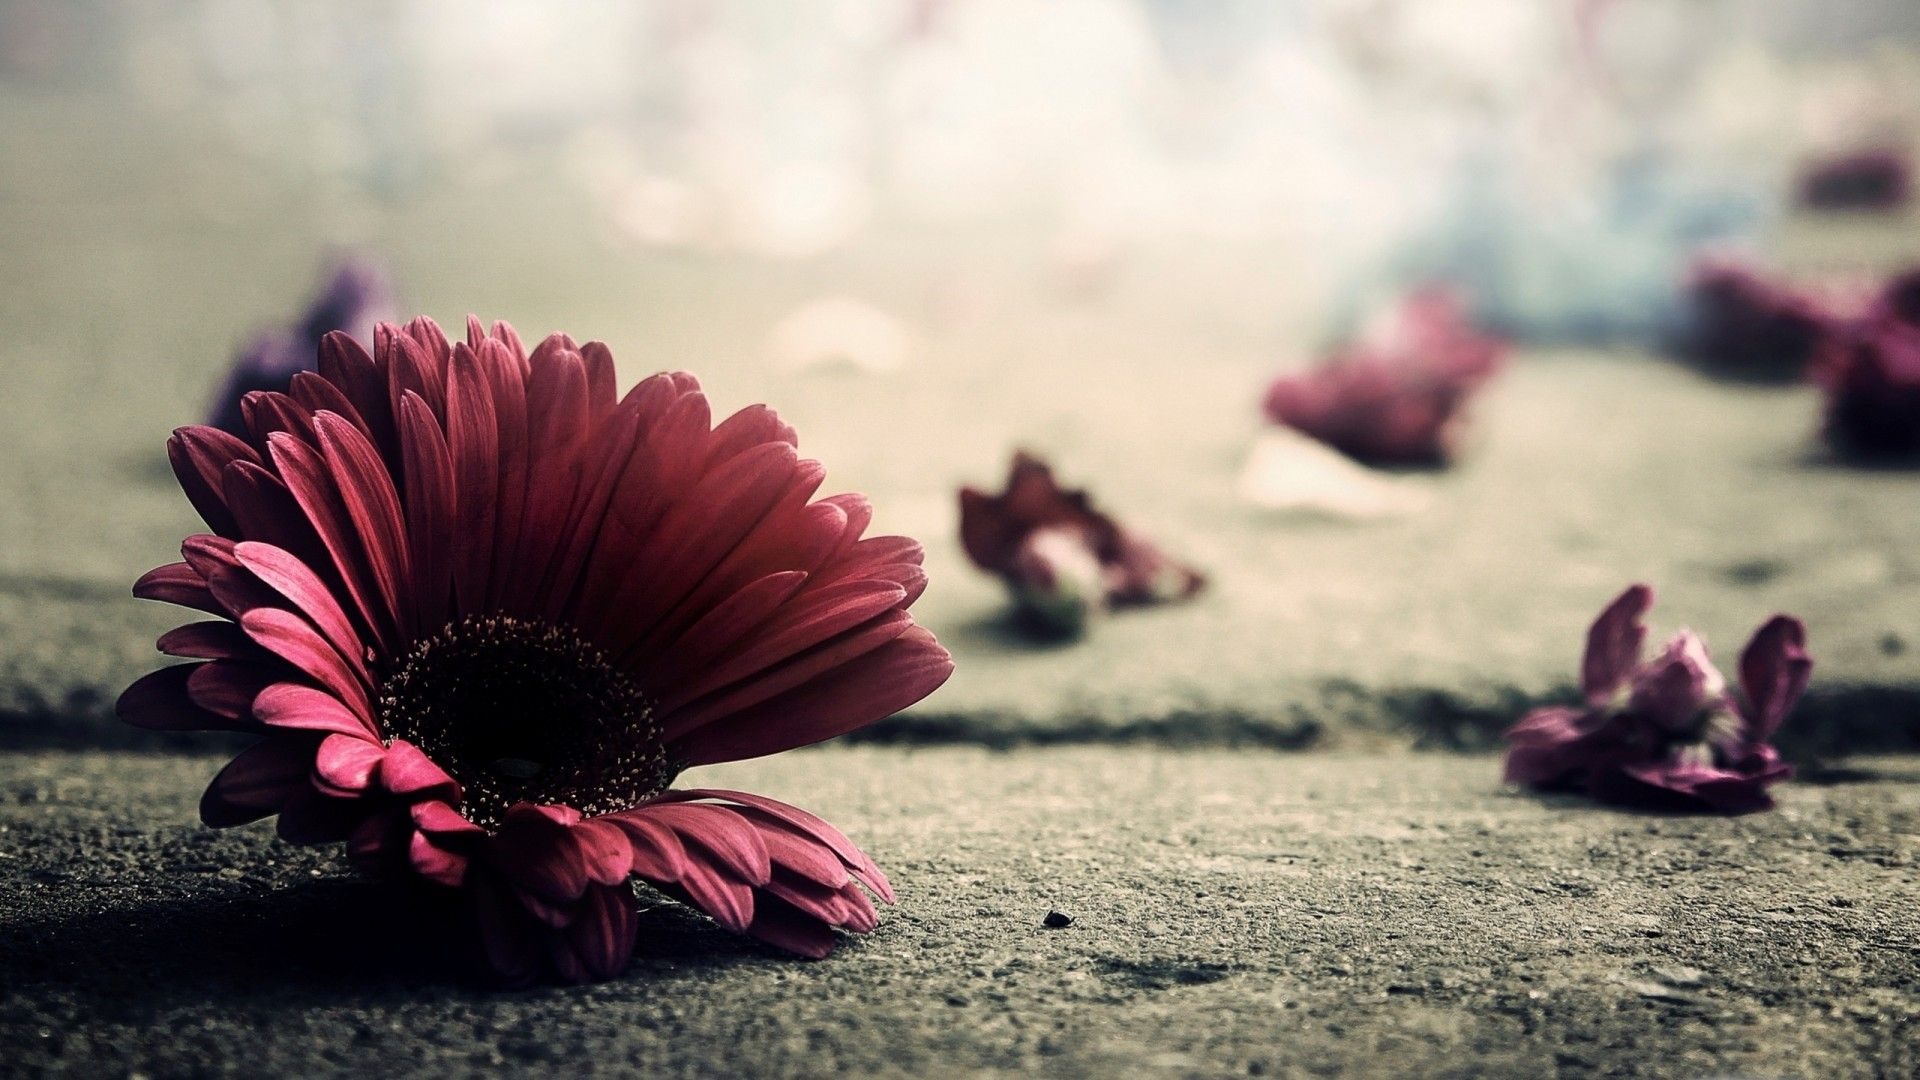 Vintage wallpaper flowers  20 VINTAGE WALLPAPERS FOR RETRO LOOK | Vintage desktop wallpapers ...